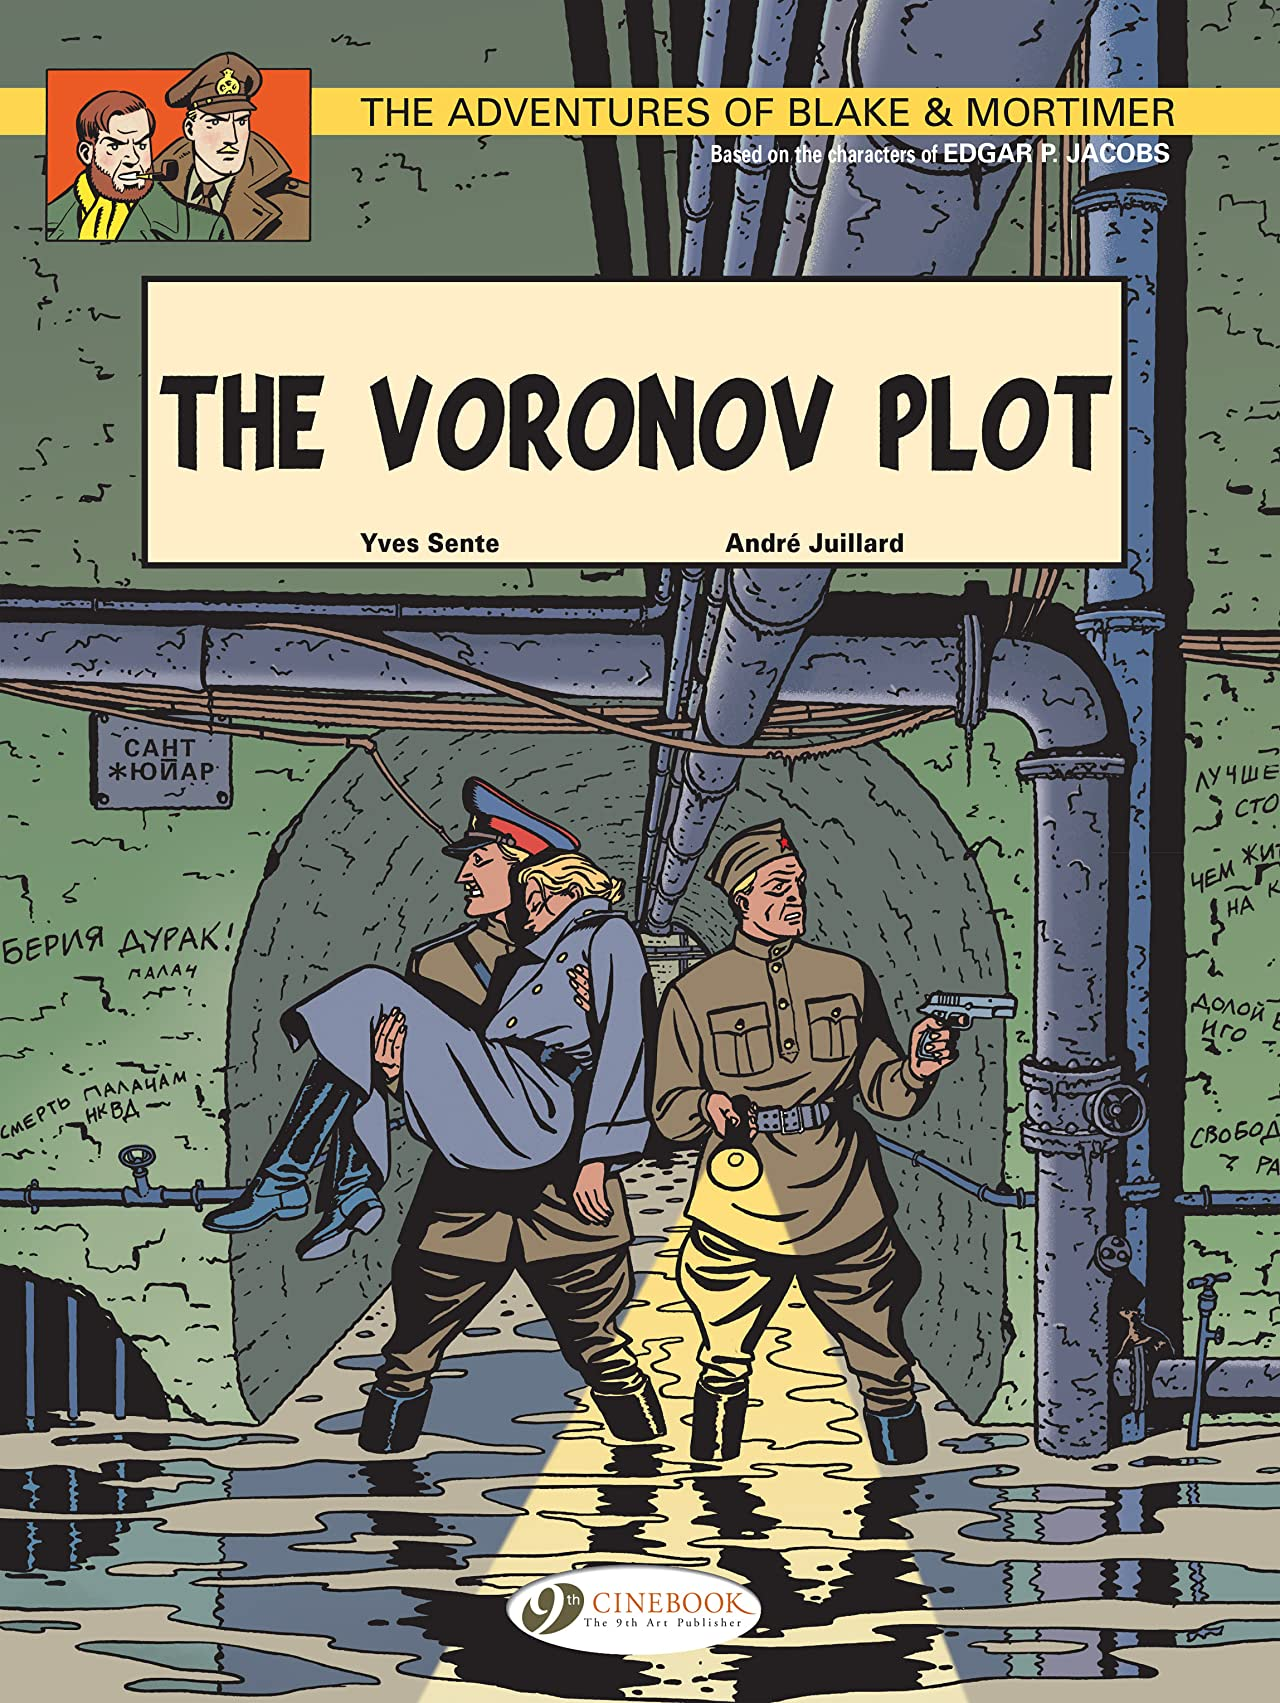 Blake & Mortimer Vol. 8: The Voronov Plot